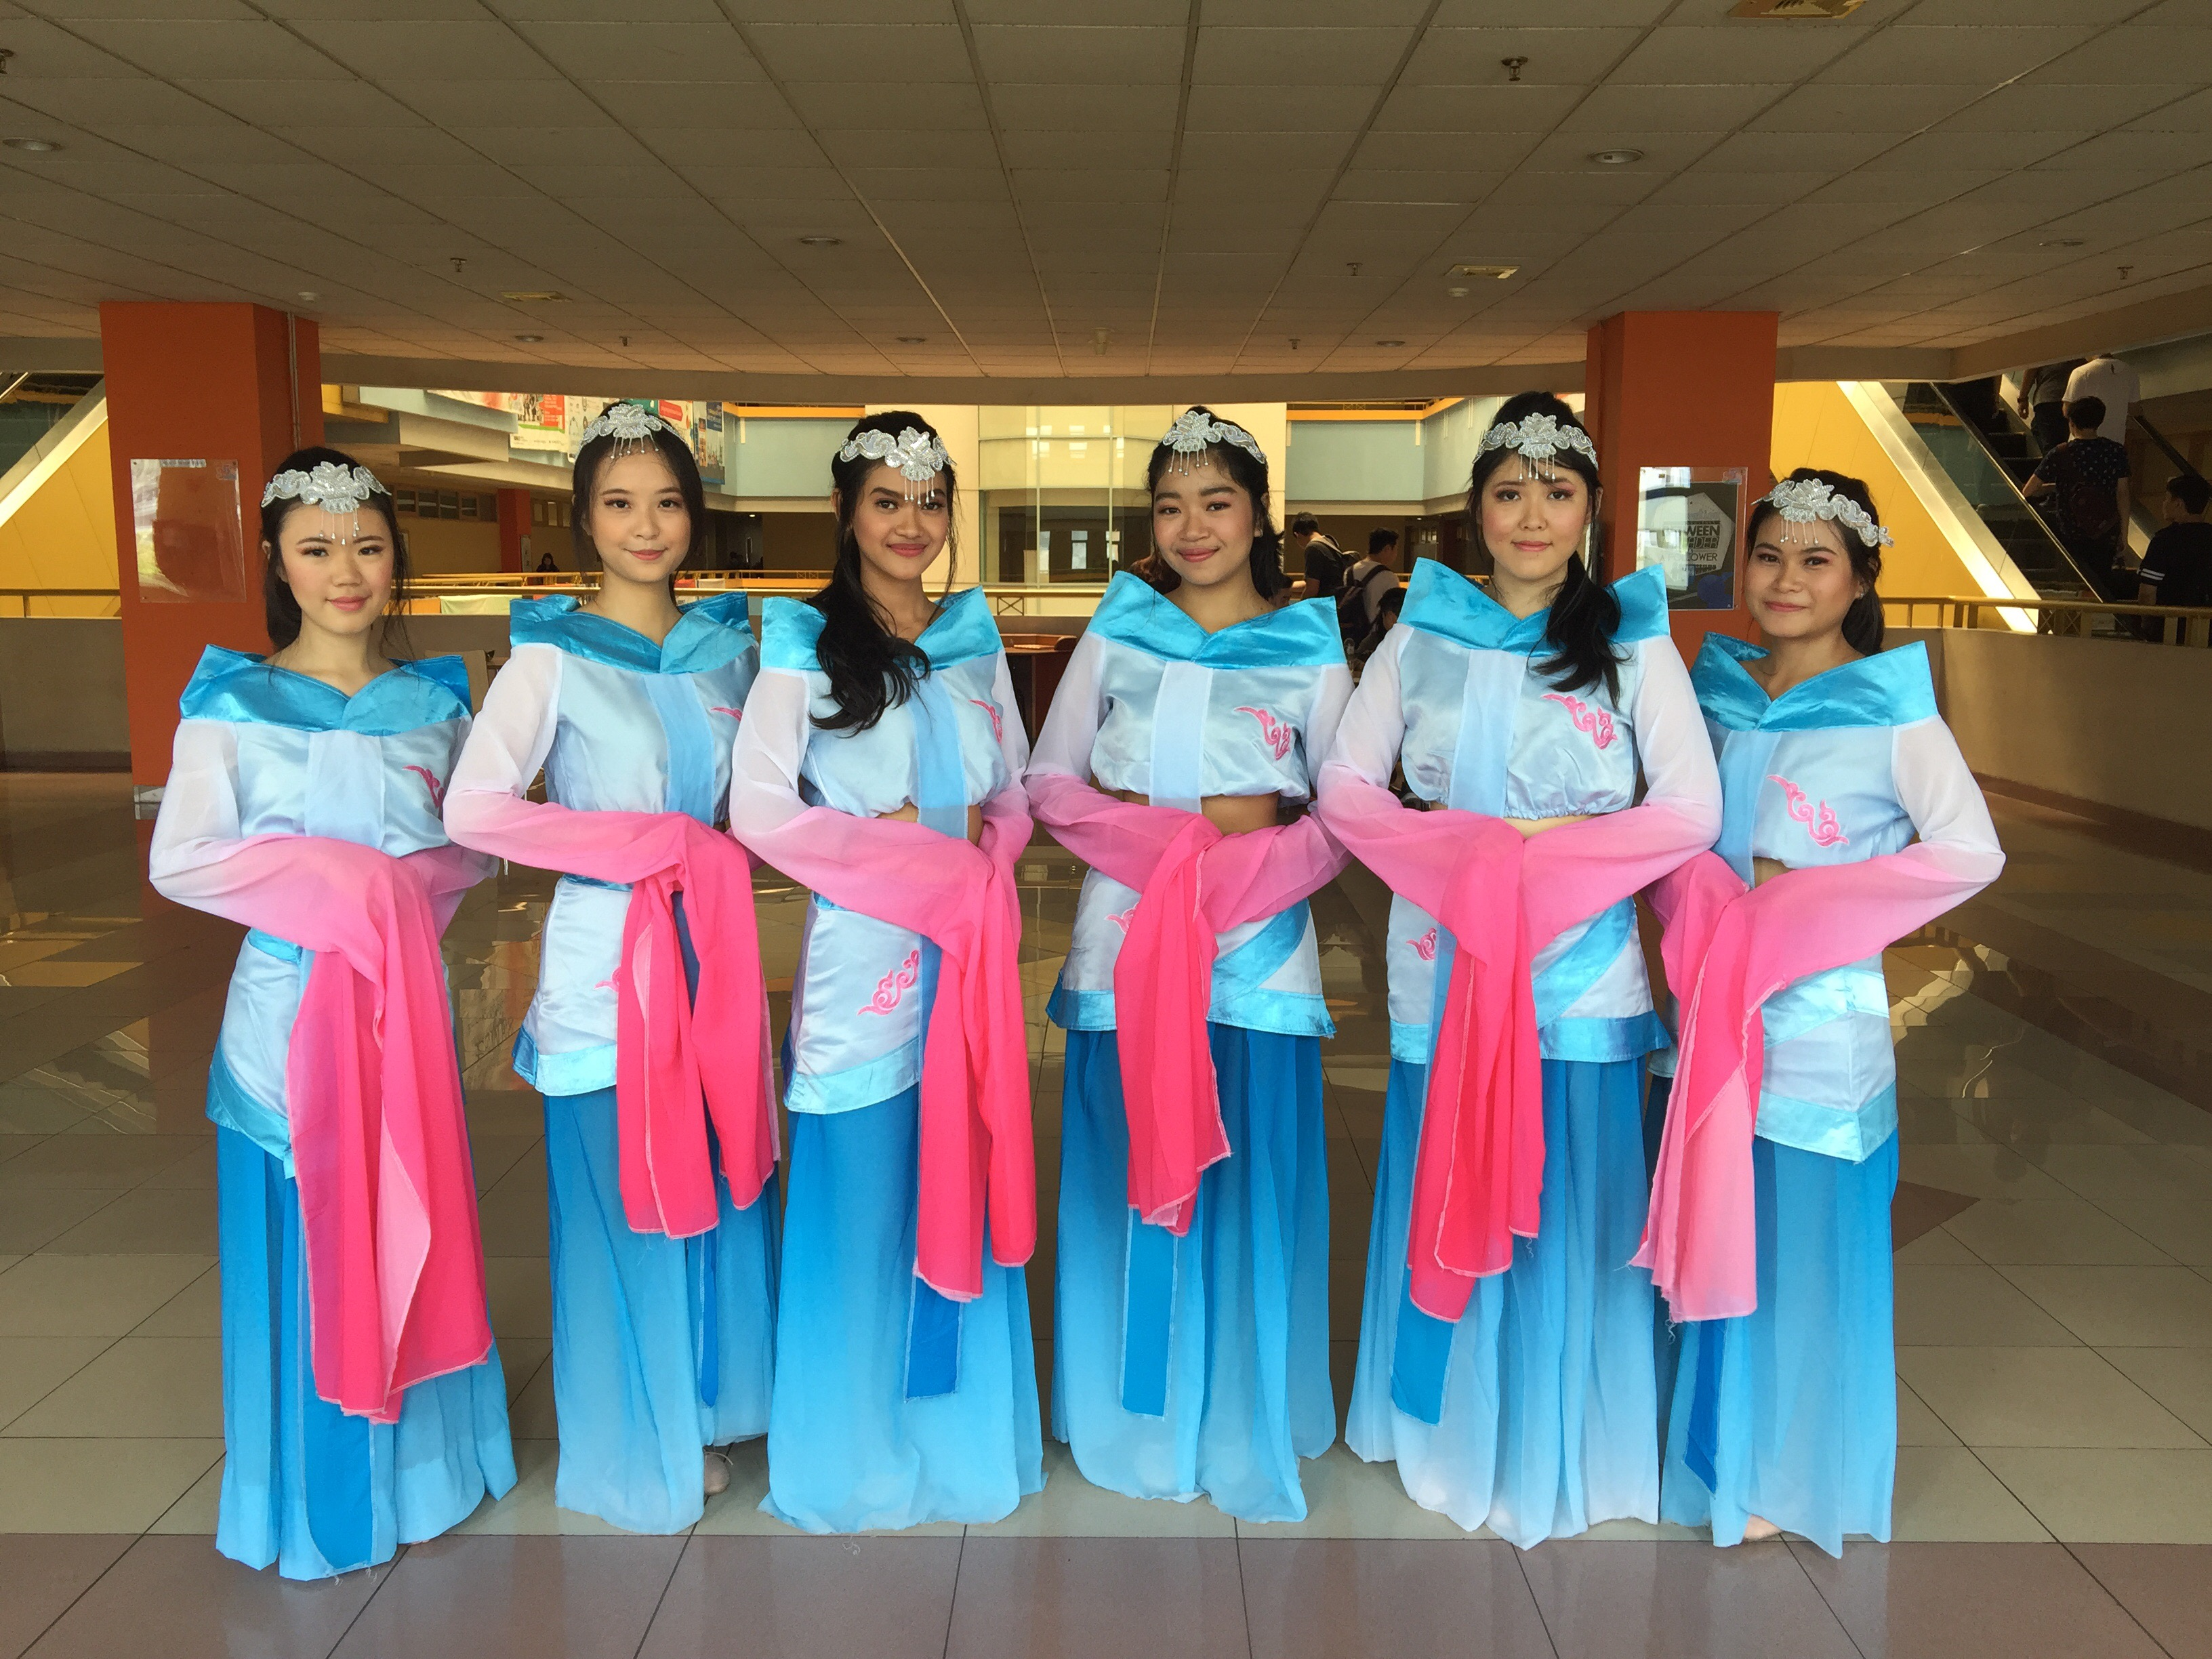 Butterfly Dream Dance Group At Global Festival For Learning 17 Event Long Dress Zefanya Novianti Sansan Lestari And Mika As The Member Of Bddg We Were Performing Caiwei A Traditional Chinese That Tells About Some